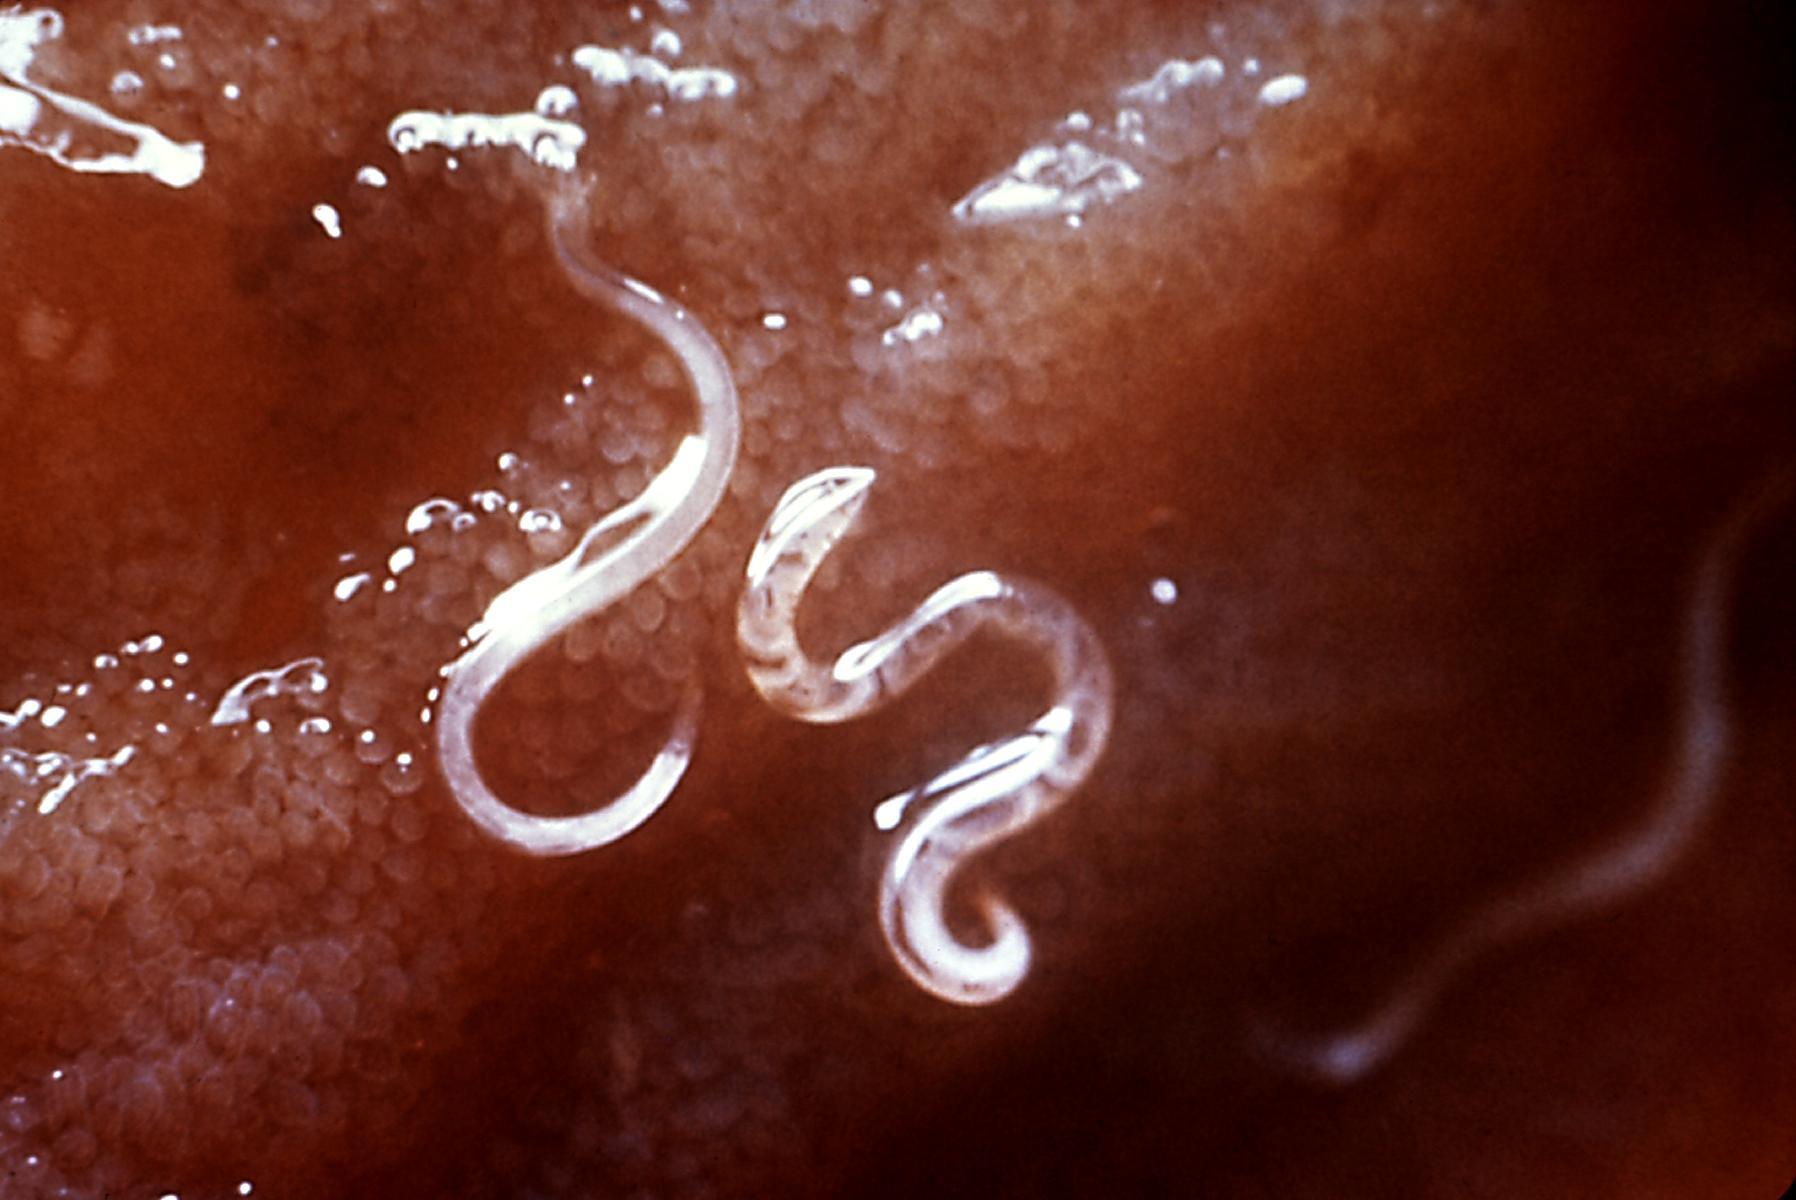 Hookworms. Credit: Wikimedia Commons